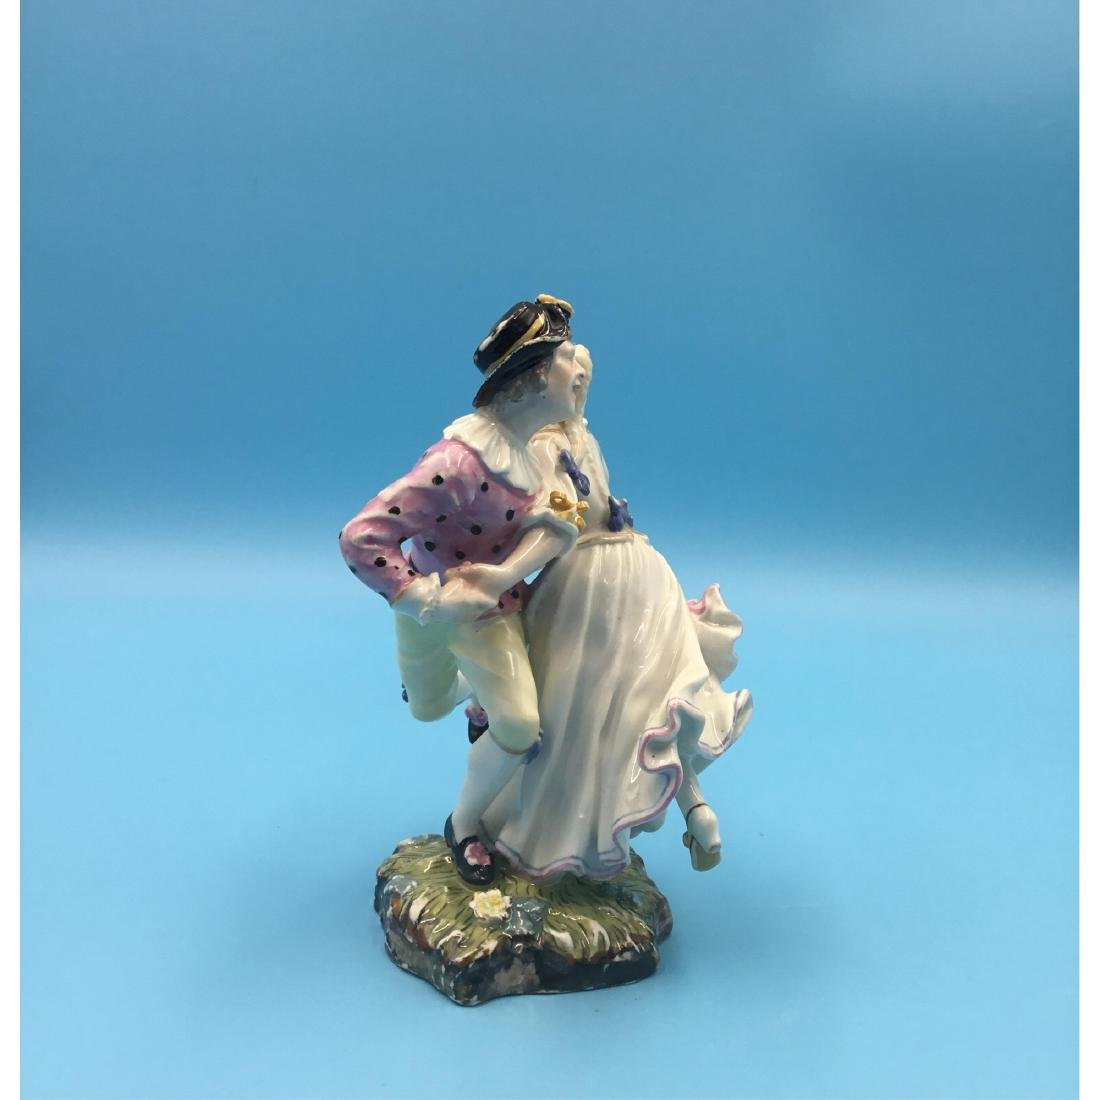 HOCHST 18TH C GERMAN PORCELAIN GROUP FIGURINE - 4